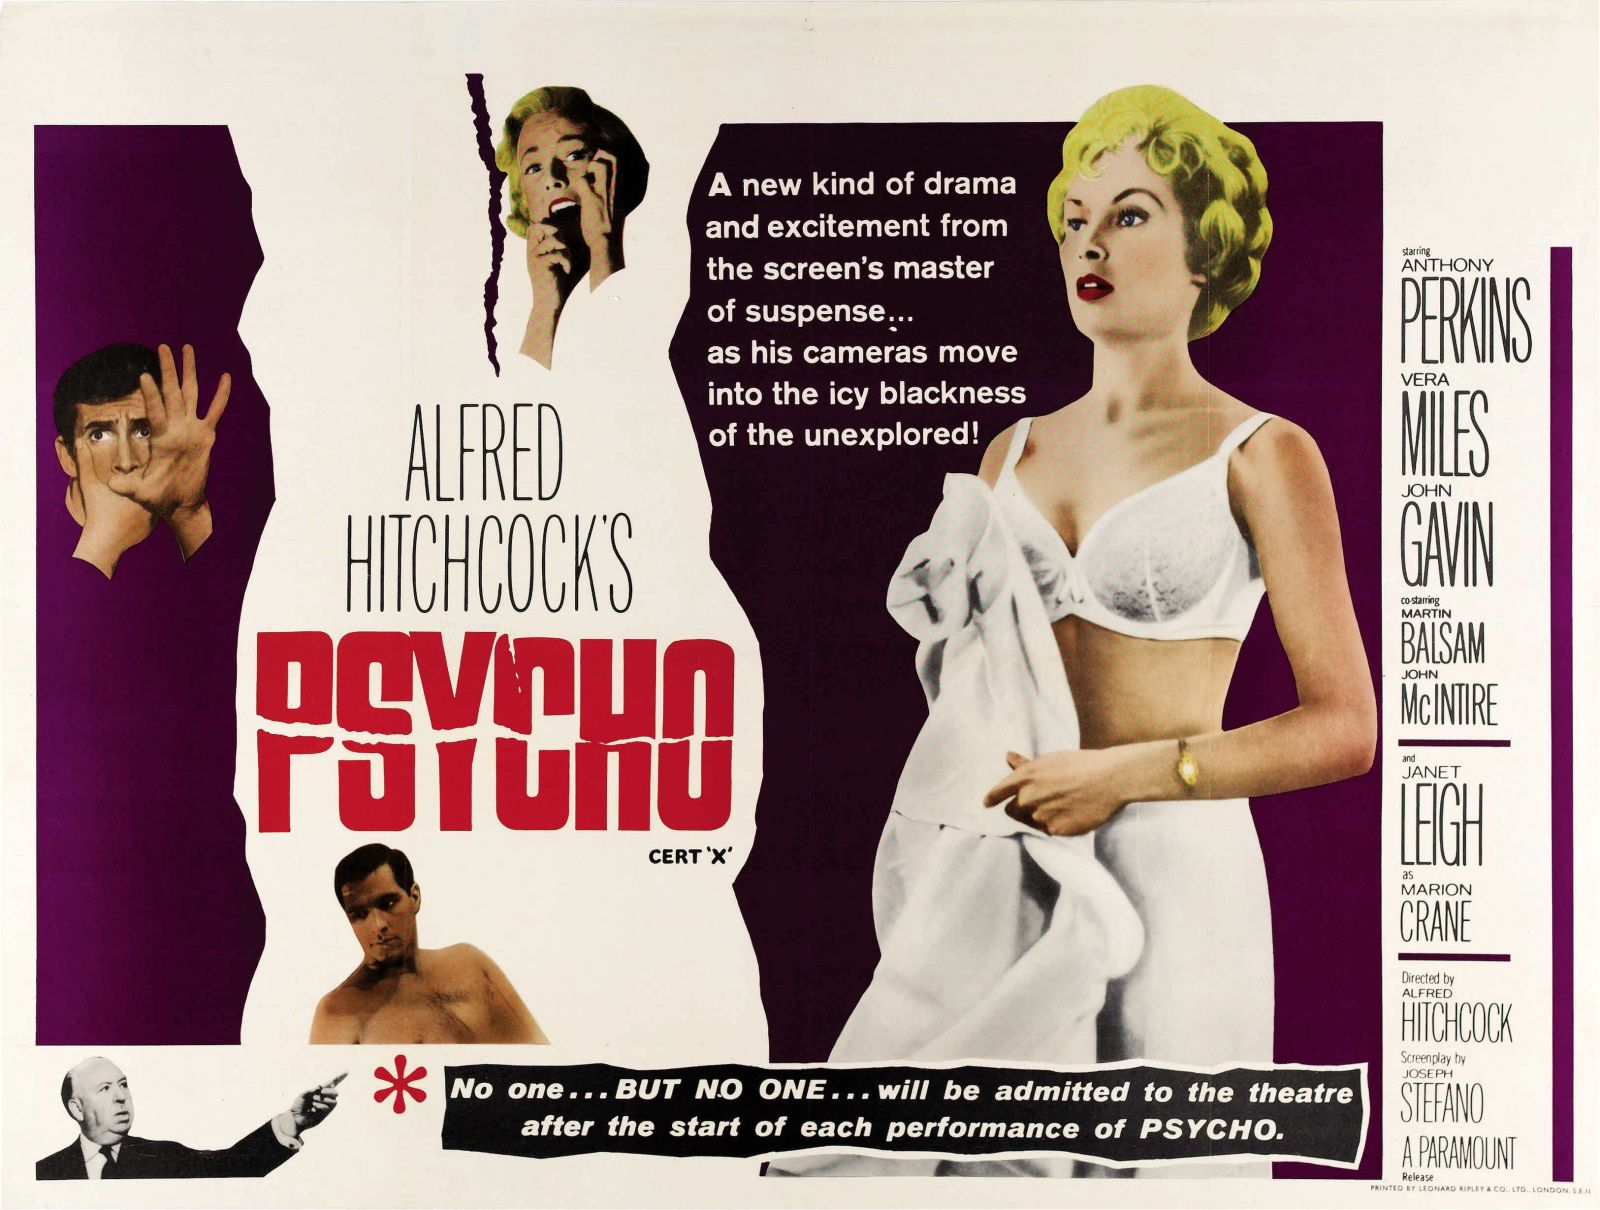 psycho publicity material the alfred hitchcock wiki psycho 1960 publicity material the alfred hitchcock wiki